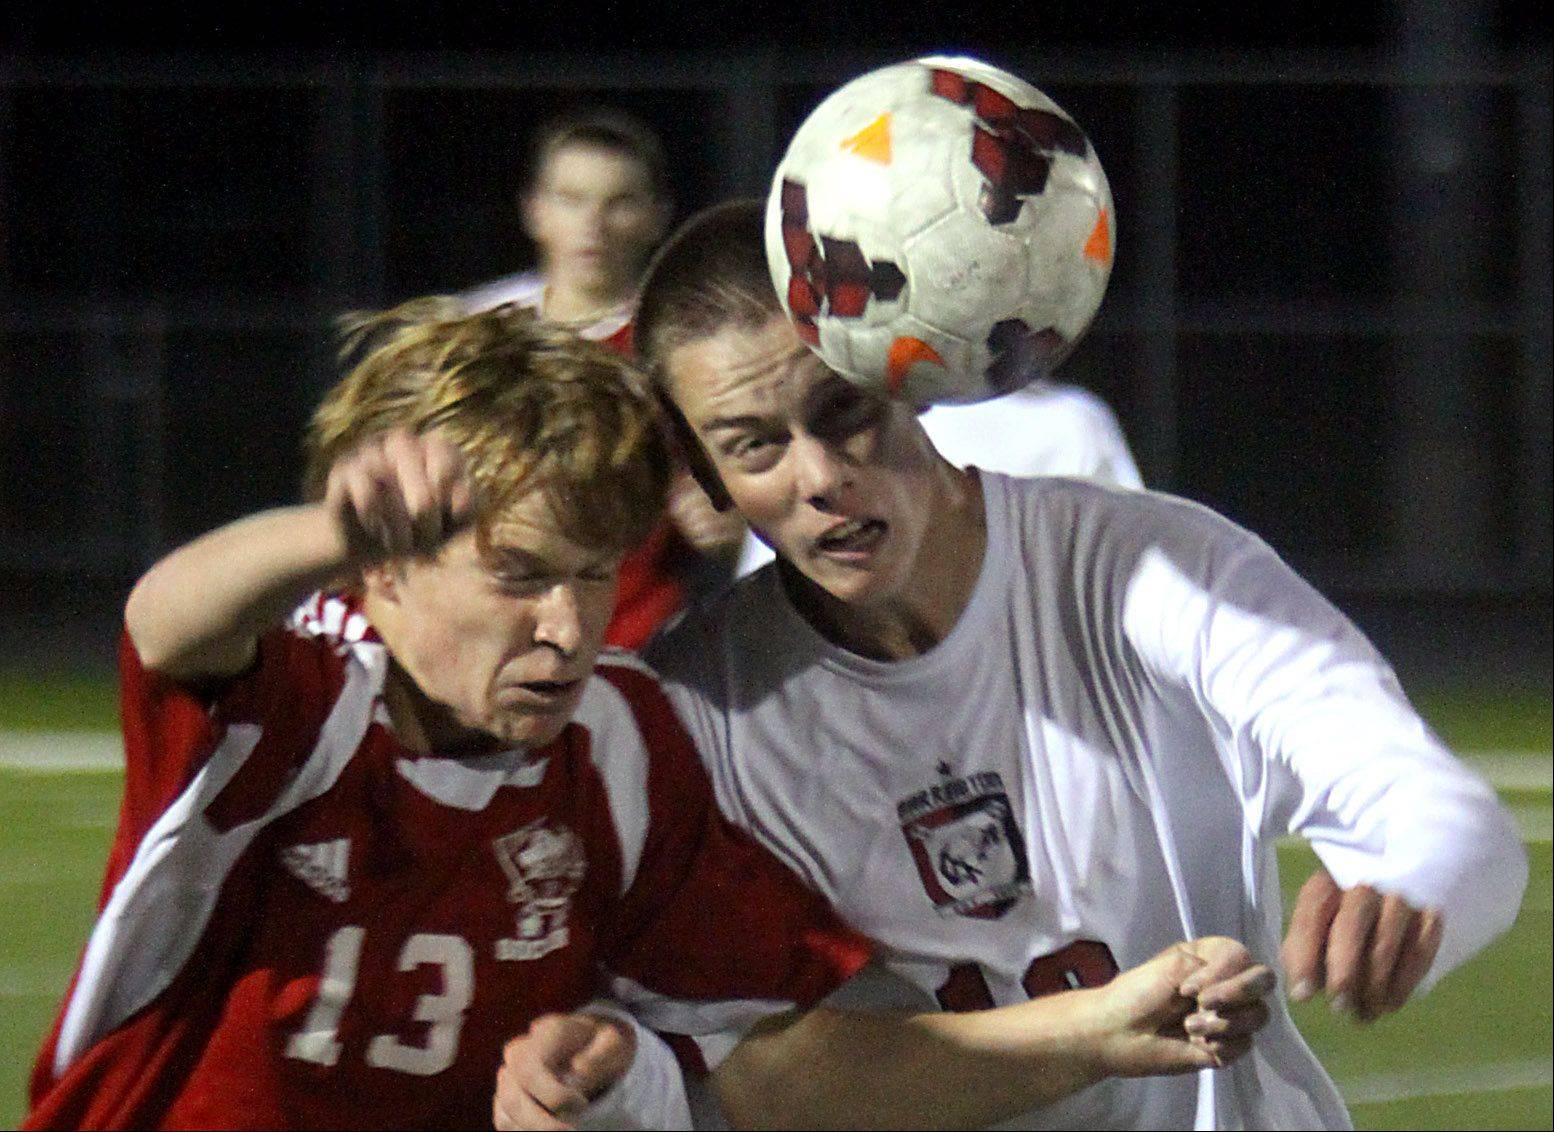 Barrington's Jonathan Wilson, right, battles Palatine's Evan Braun at Barrington on Monday night.